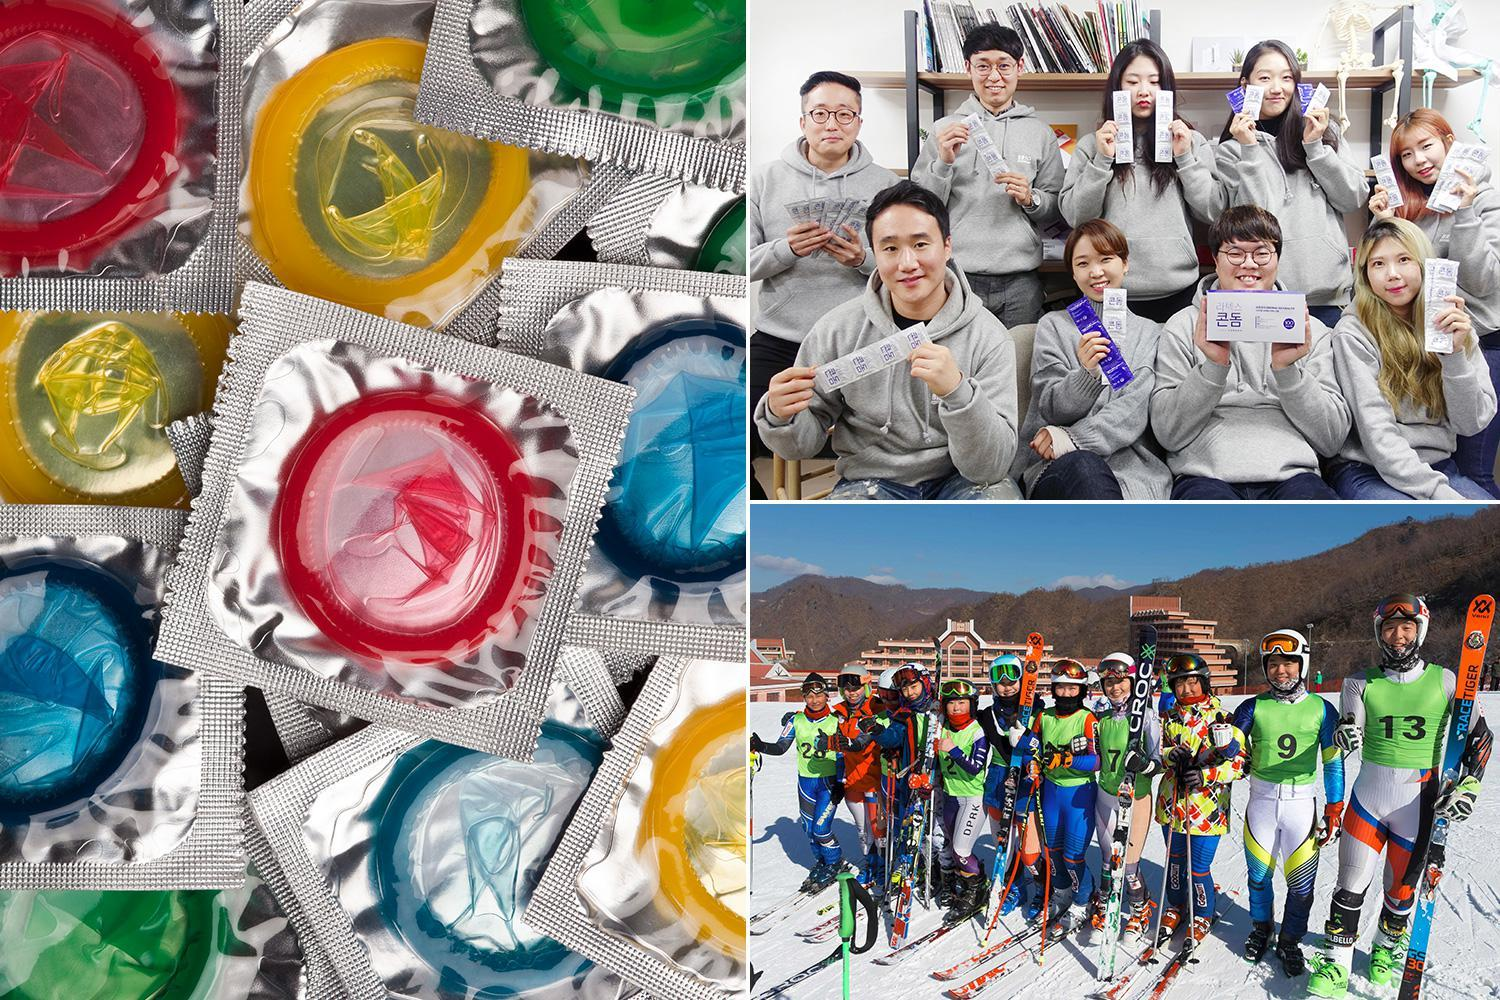 Winter Olympics: Record smashed already Winter Olympics in South Korea with 110,000 free condoms handed to horny athletes